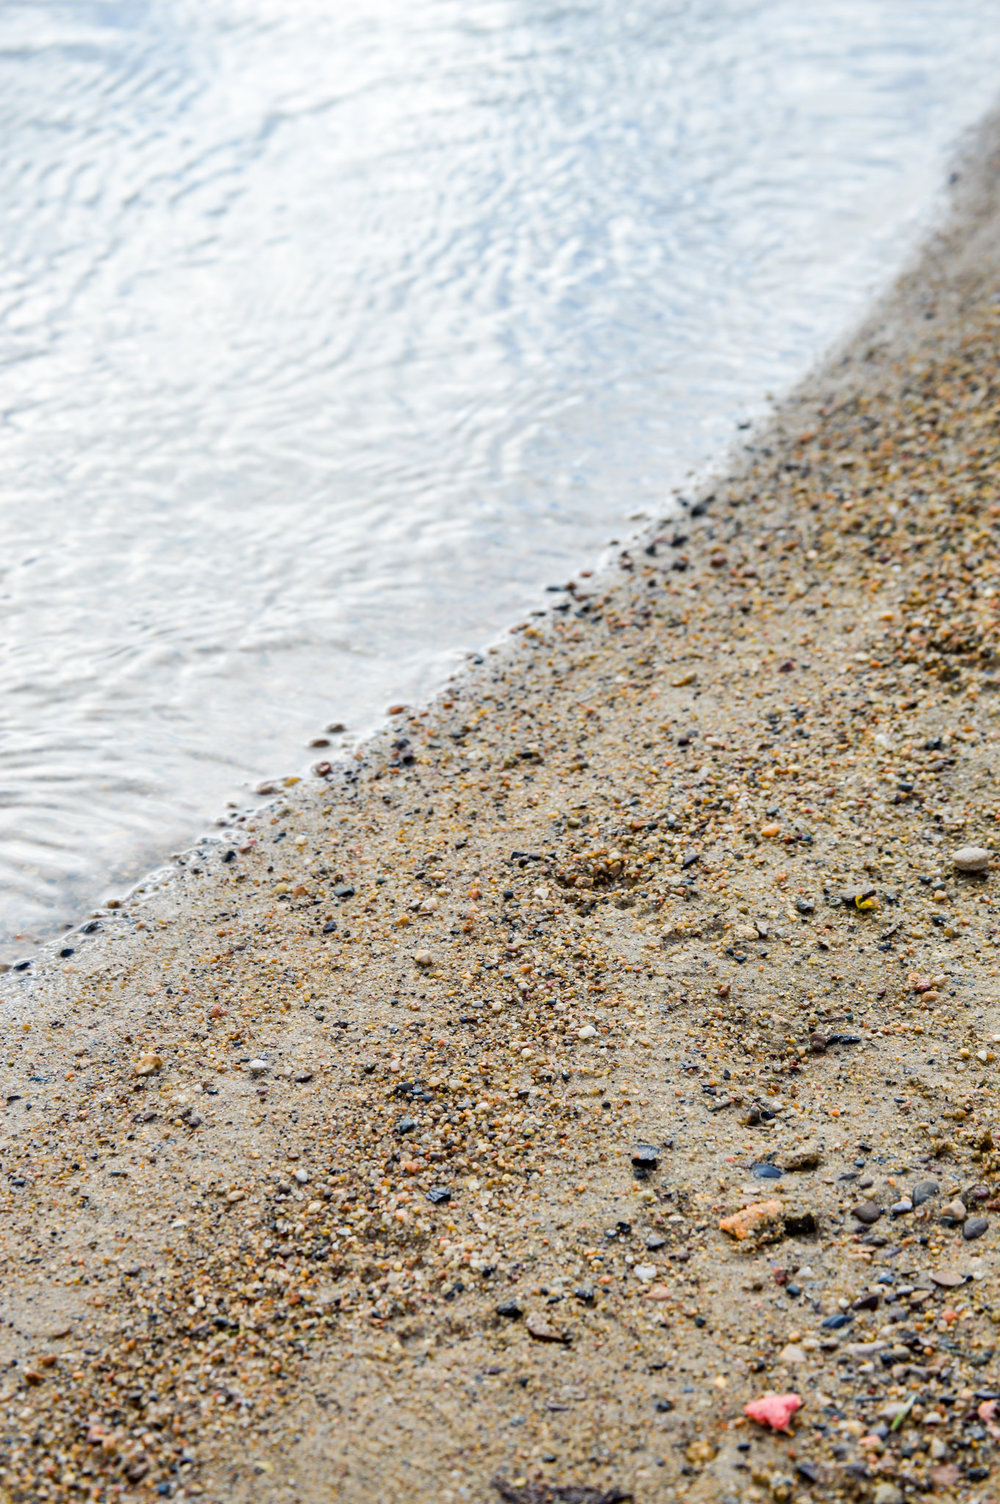 A simple beach near the house we stayed in for the weekend. Beauty in simplicity. Great image.